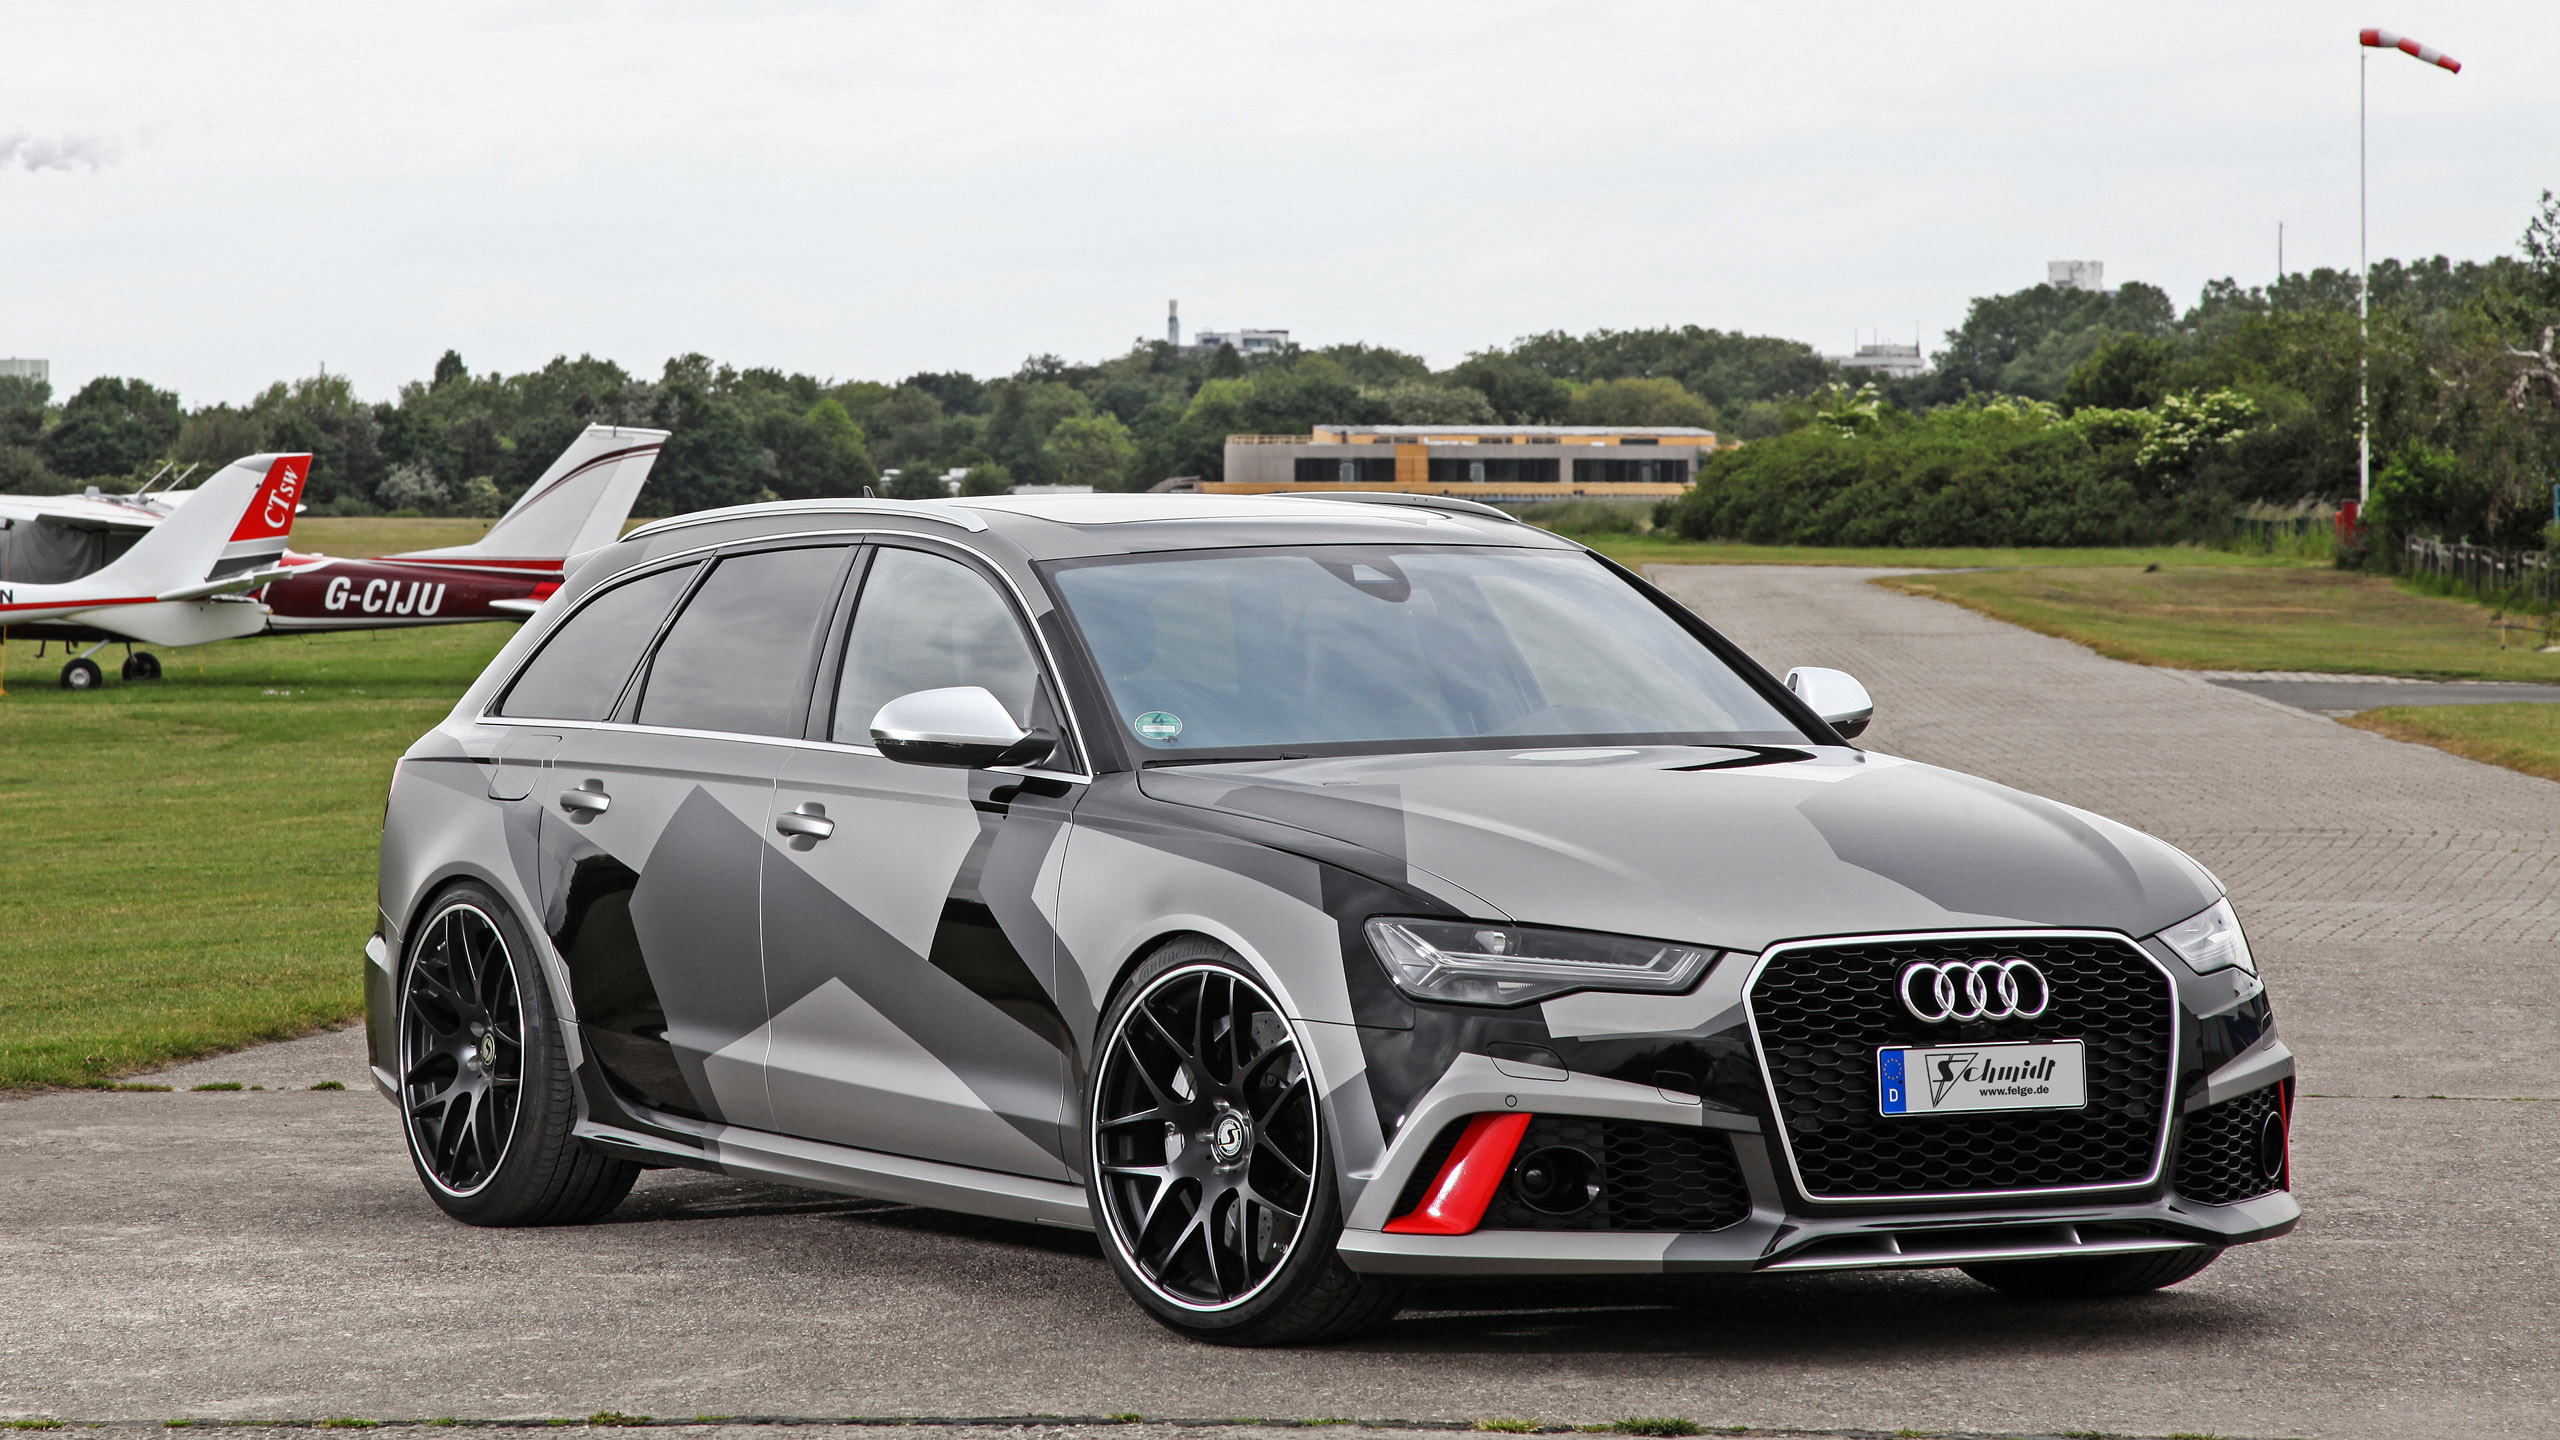 2015 Audi Rs6 Avant Wallpaper Hd Car Wallpapers